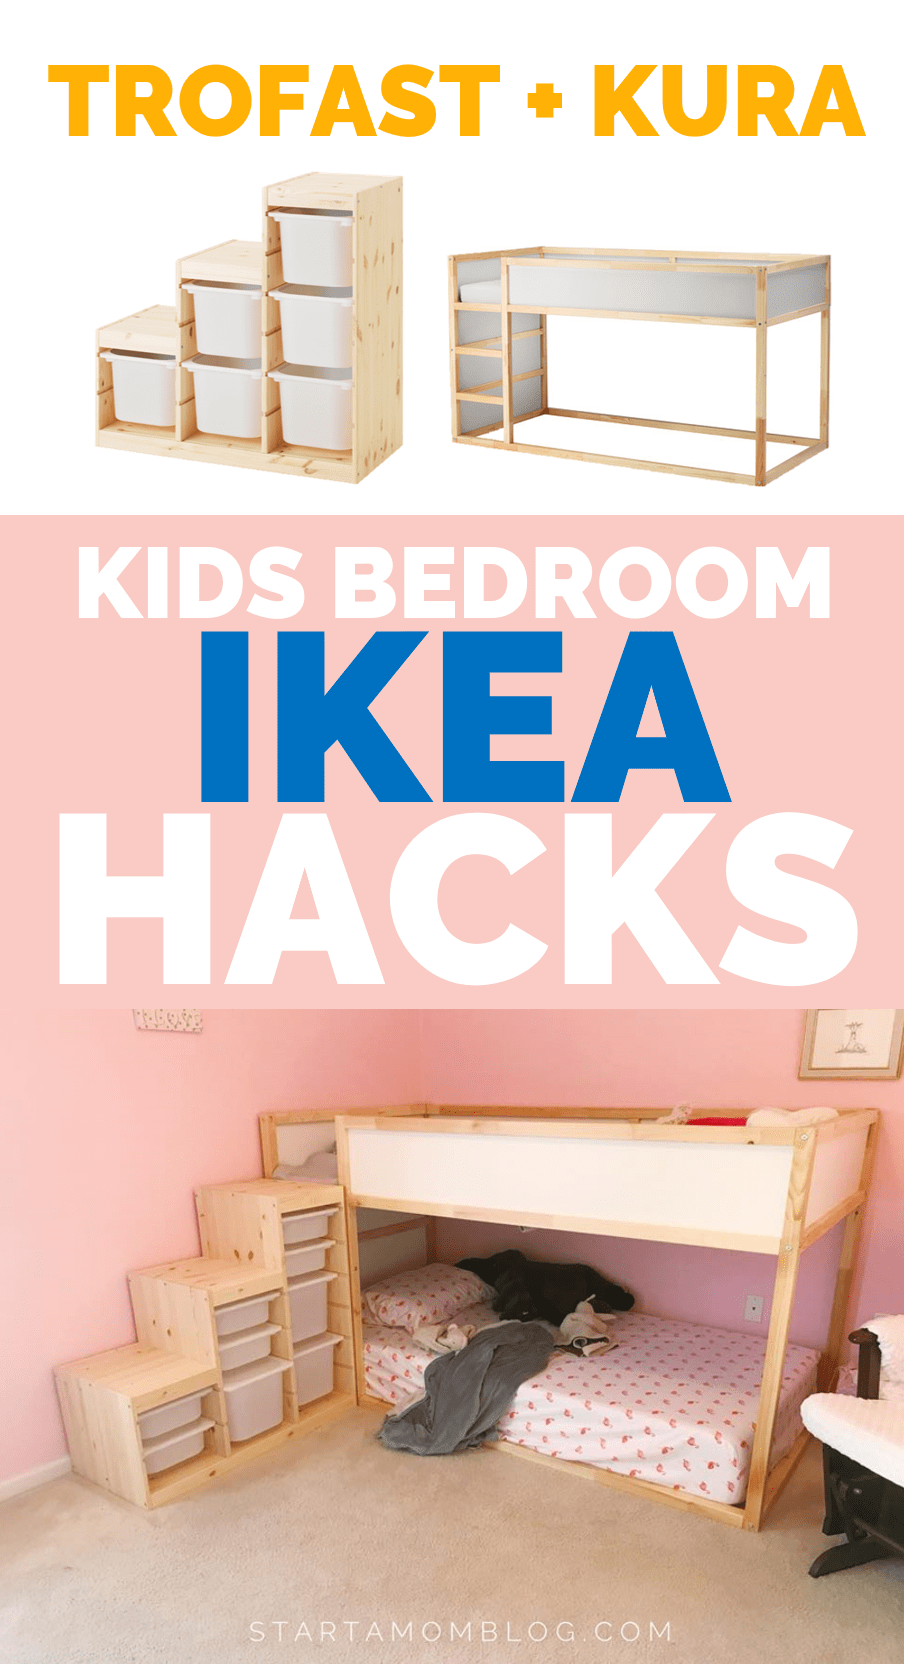 Ikea Kleinkinderbett How To Start A Mom Blog Free Guide